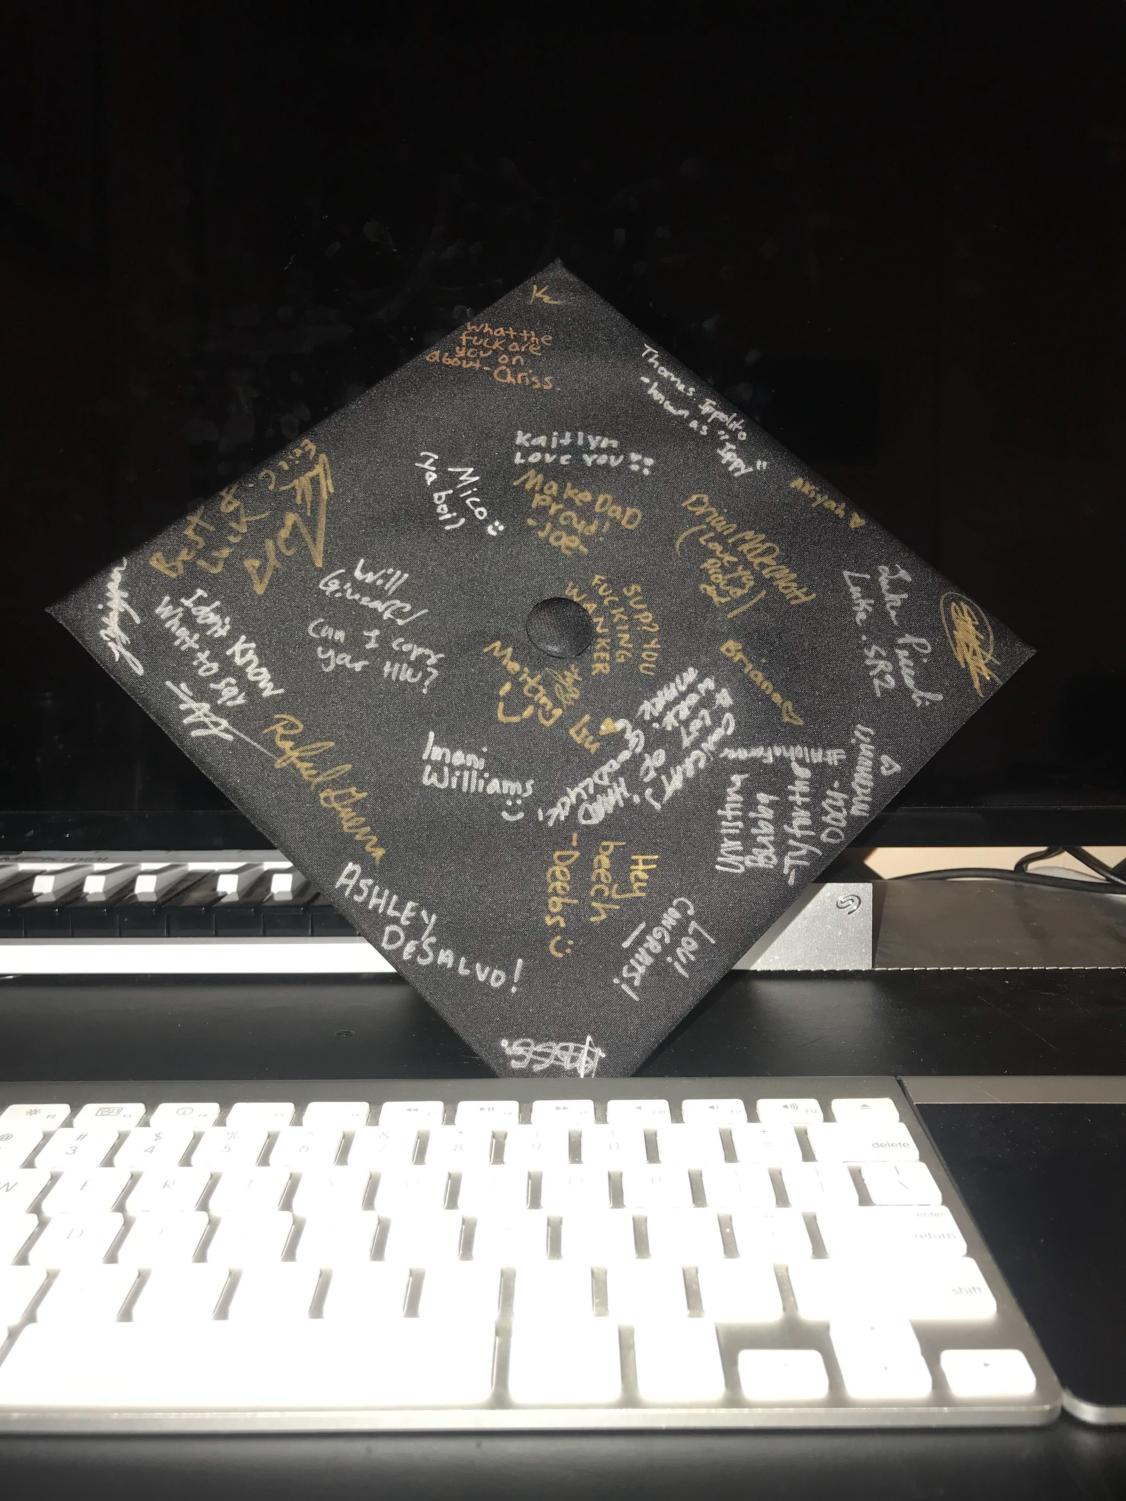 Seniors have the option of decorating their graduation cap for their big day. Many students, such as Jason Zhizpon, choose to get it signed by their friends to commemorate their final year at Pace.